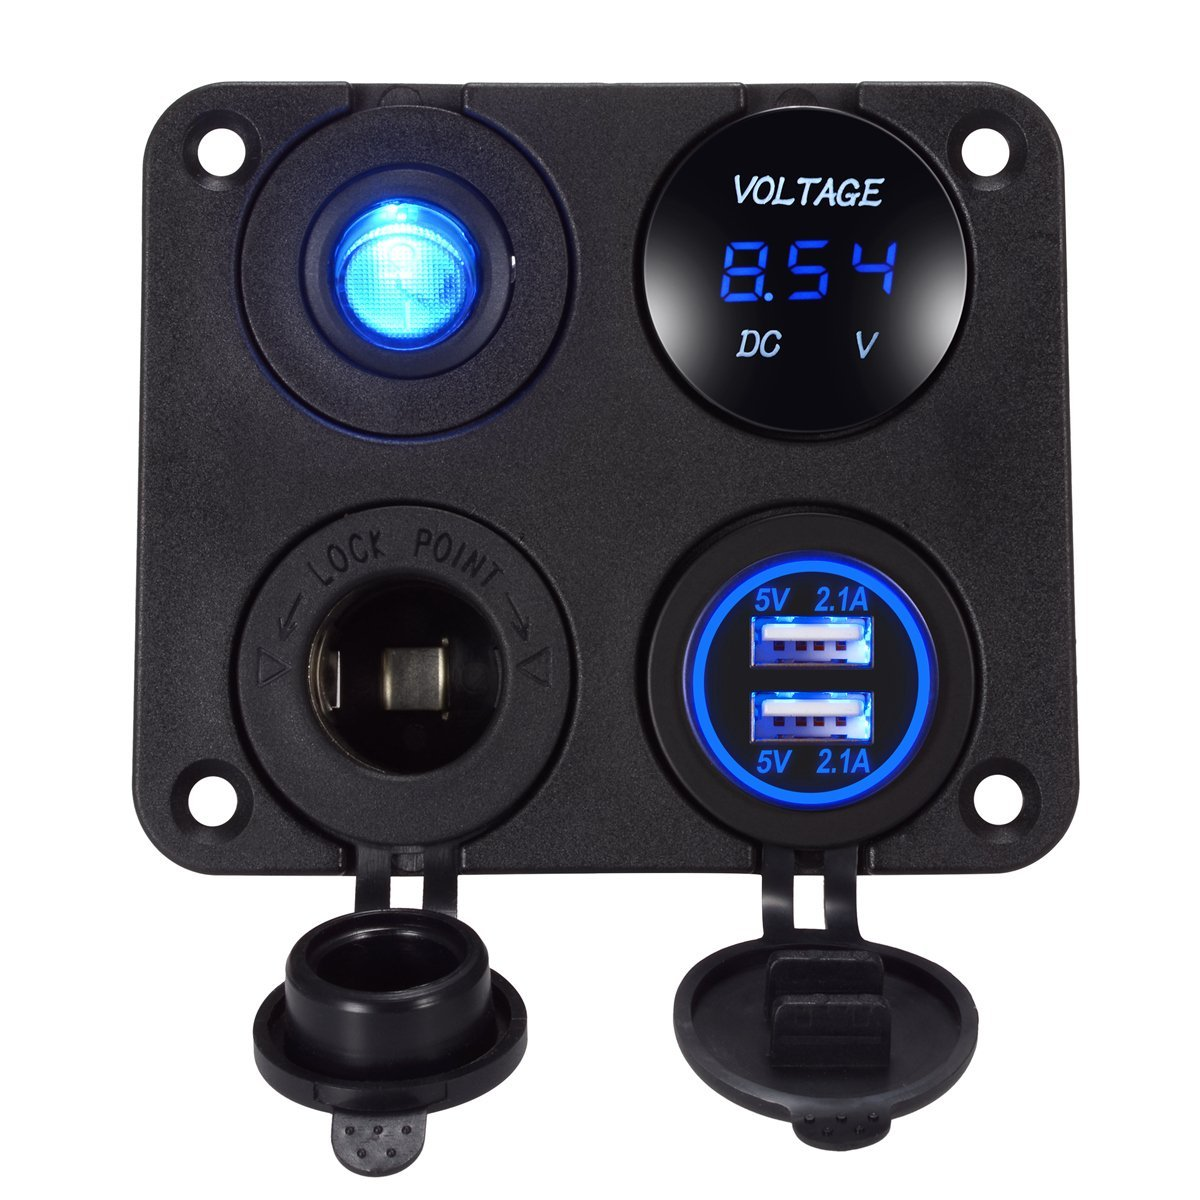 4 In 1 Car Charger Dual USB Charger 4.2A Voltmeter 12V Cigarette Lighter ON-OFF Switch For Boat Marine RV Truck Camper Vehicles